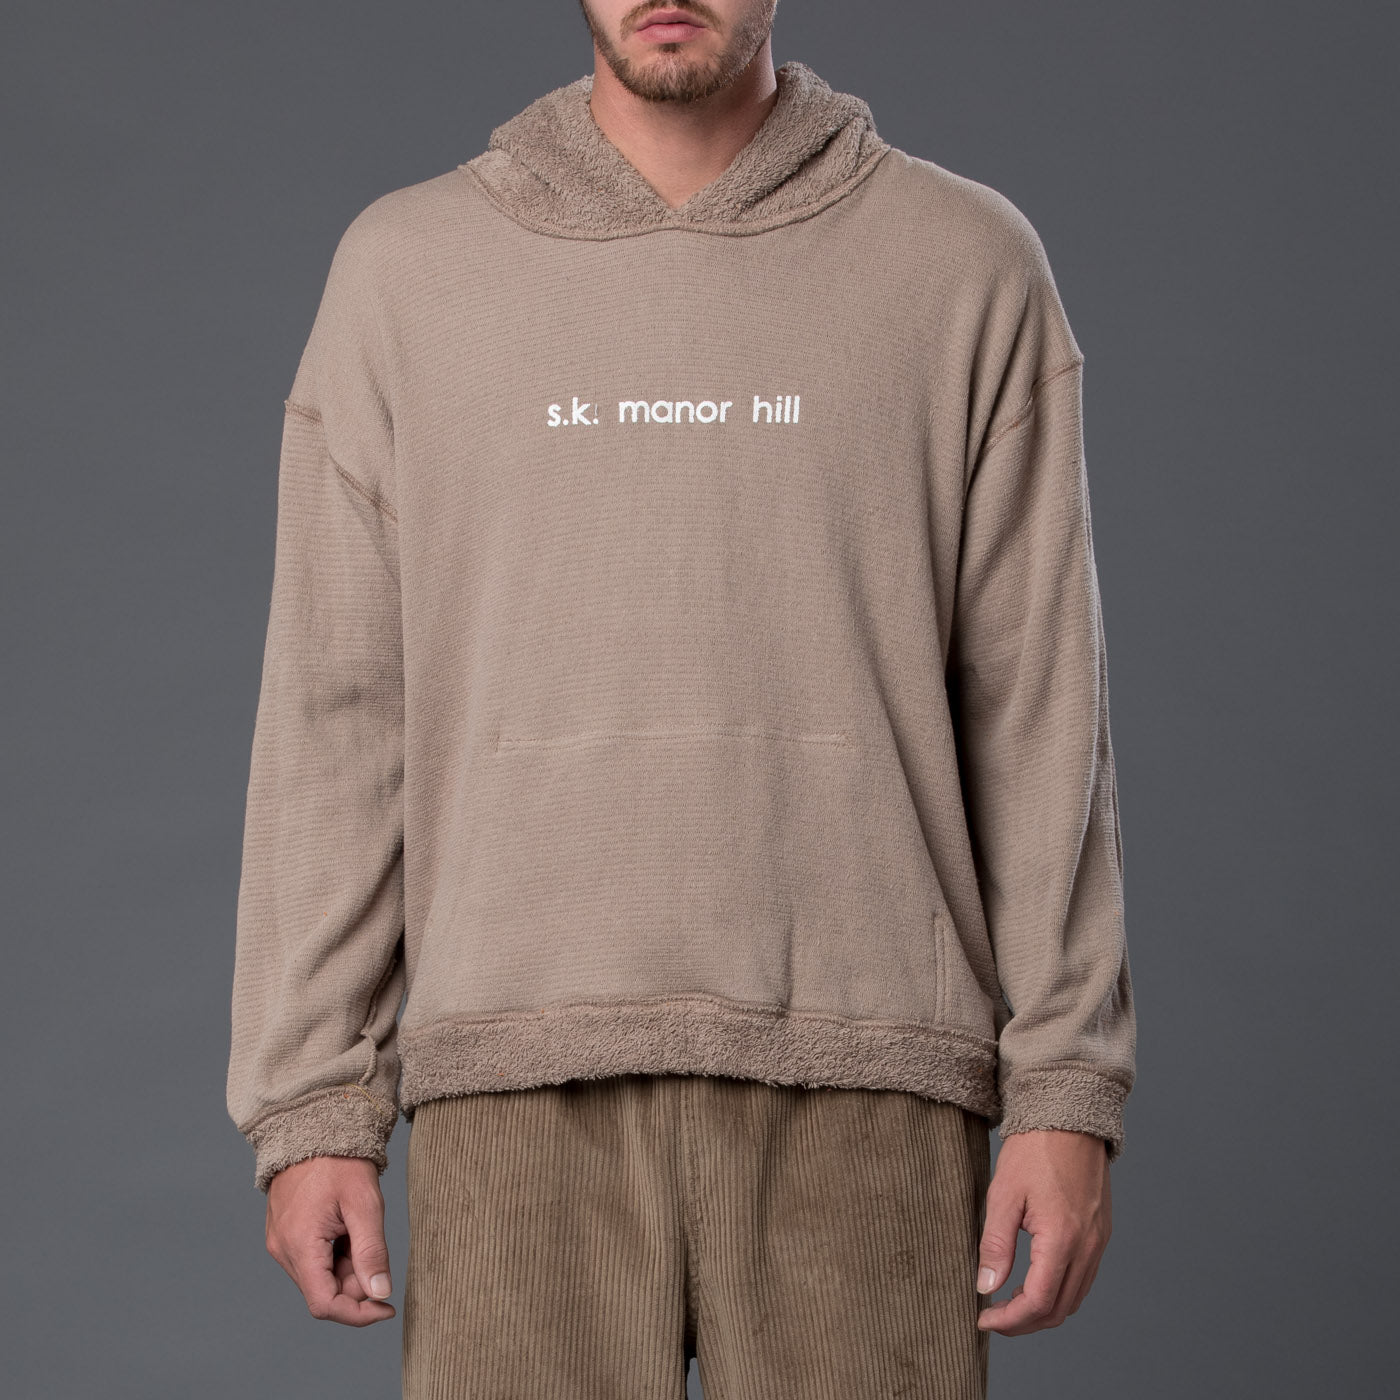 s.k. manor hill Reversible Pile Hoodie